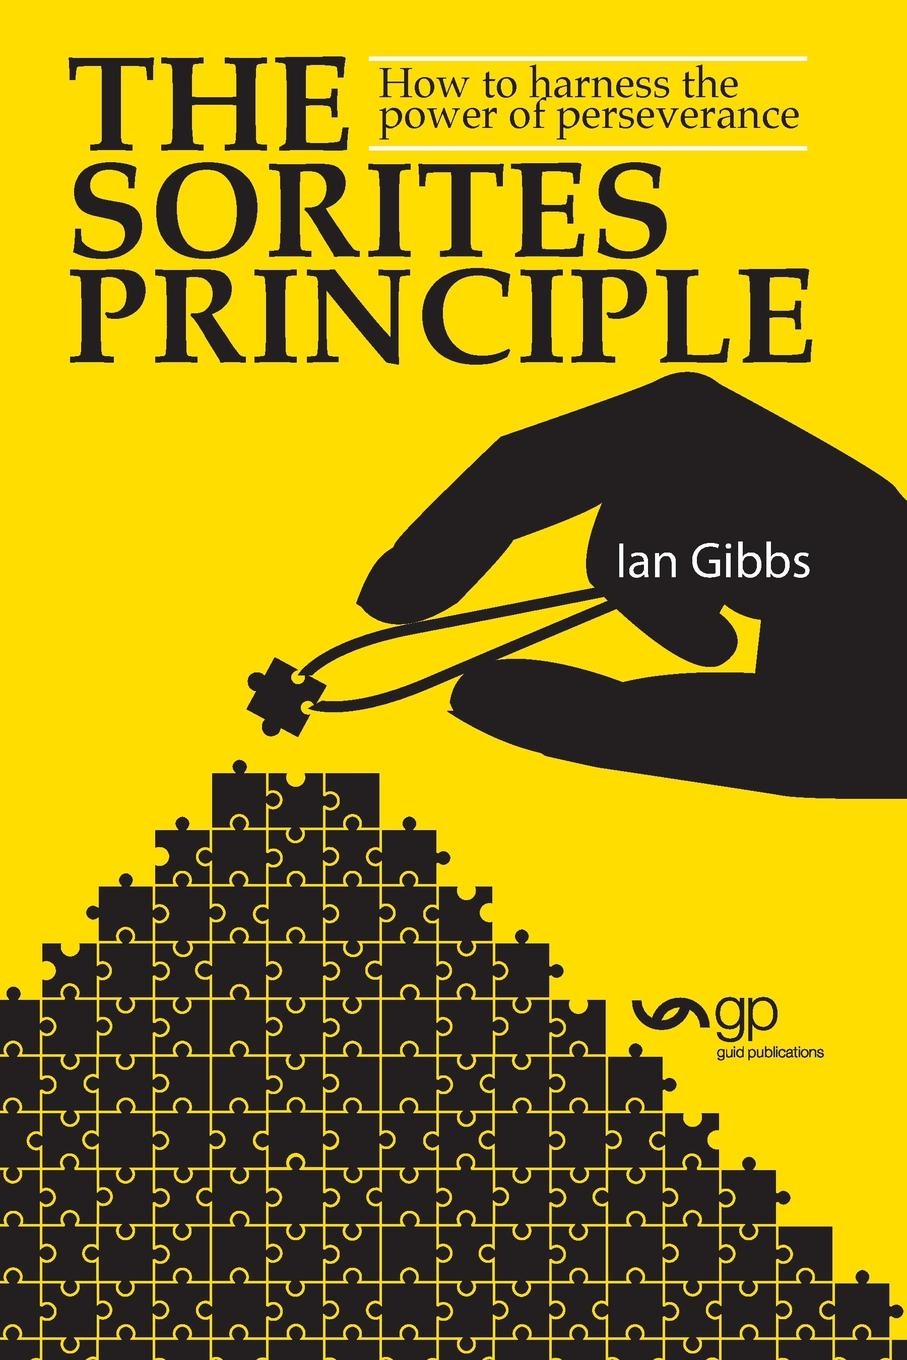 Ian Gibbs The Sorites Principle. How to harness the power of perseverance jeffrey magee your trajectory code how to change your decisions actions and directions to become part of the top 1